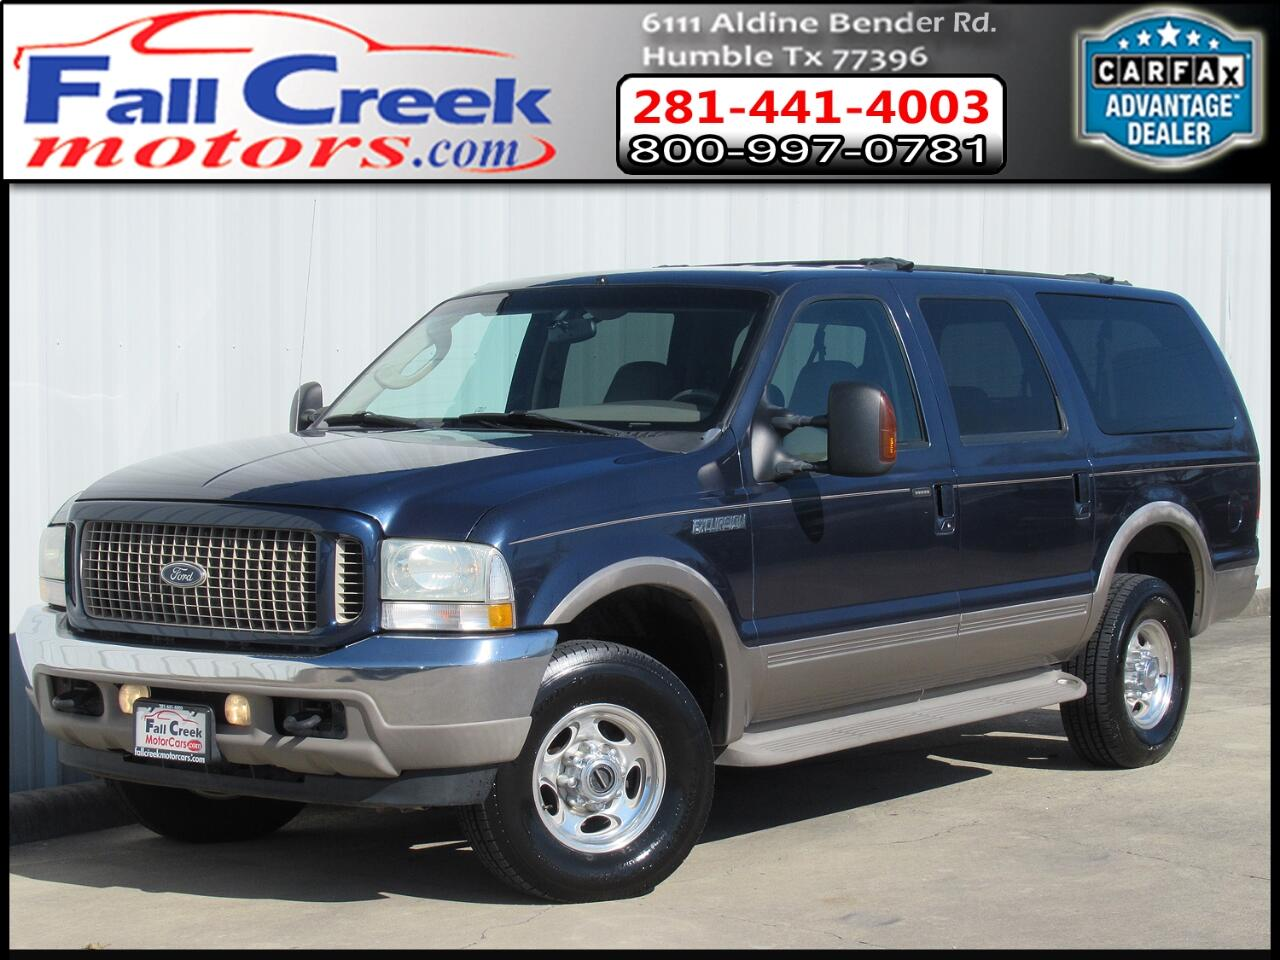 Ford Excursion Eddie Bauer 6.0L 4WD 2004